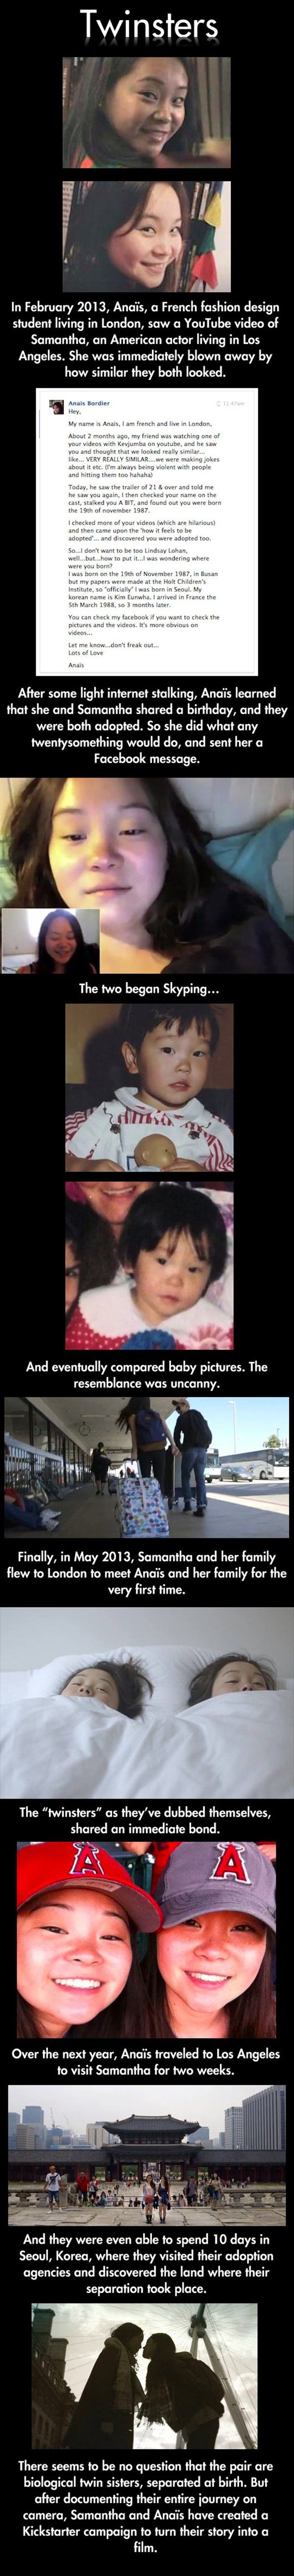 Twinsters // funny pictures - funny photos - funny images - funny pics - funny quotes - #lol #humor #funnypictures